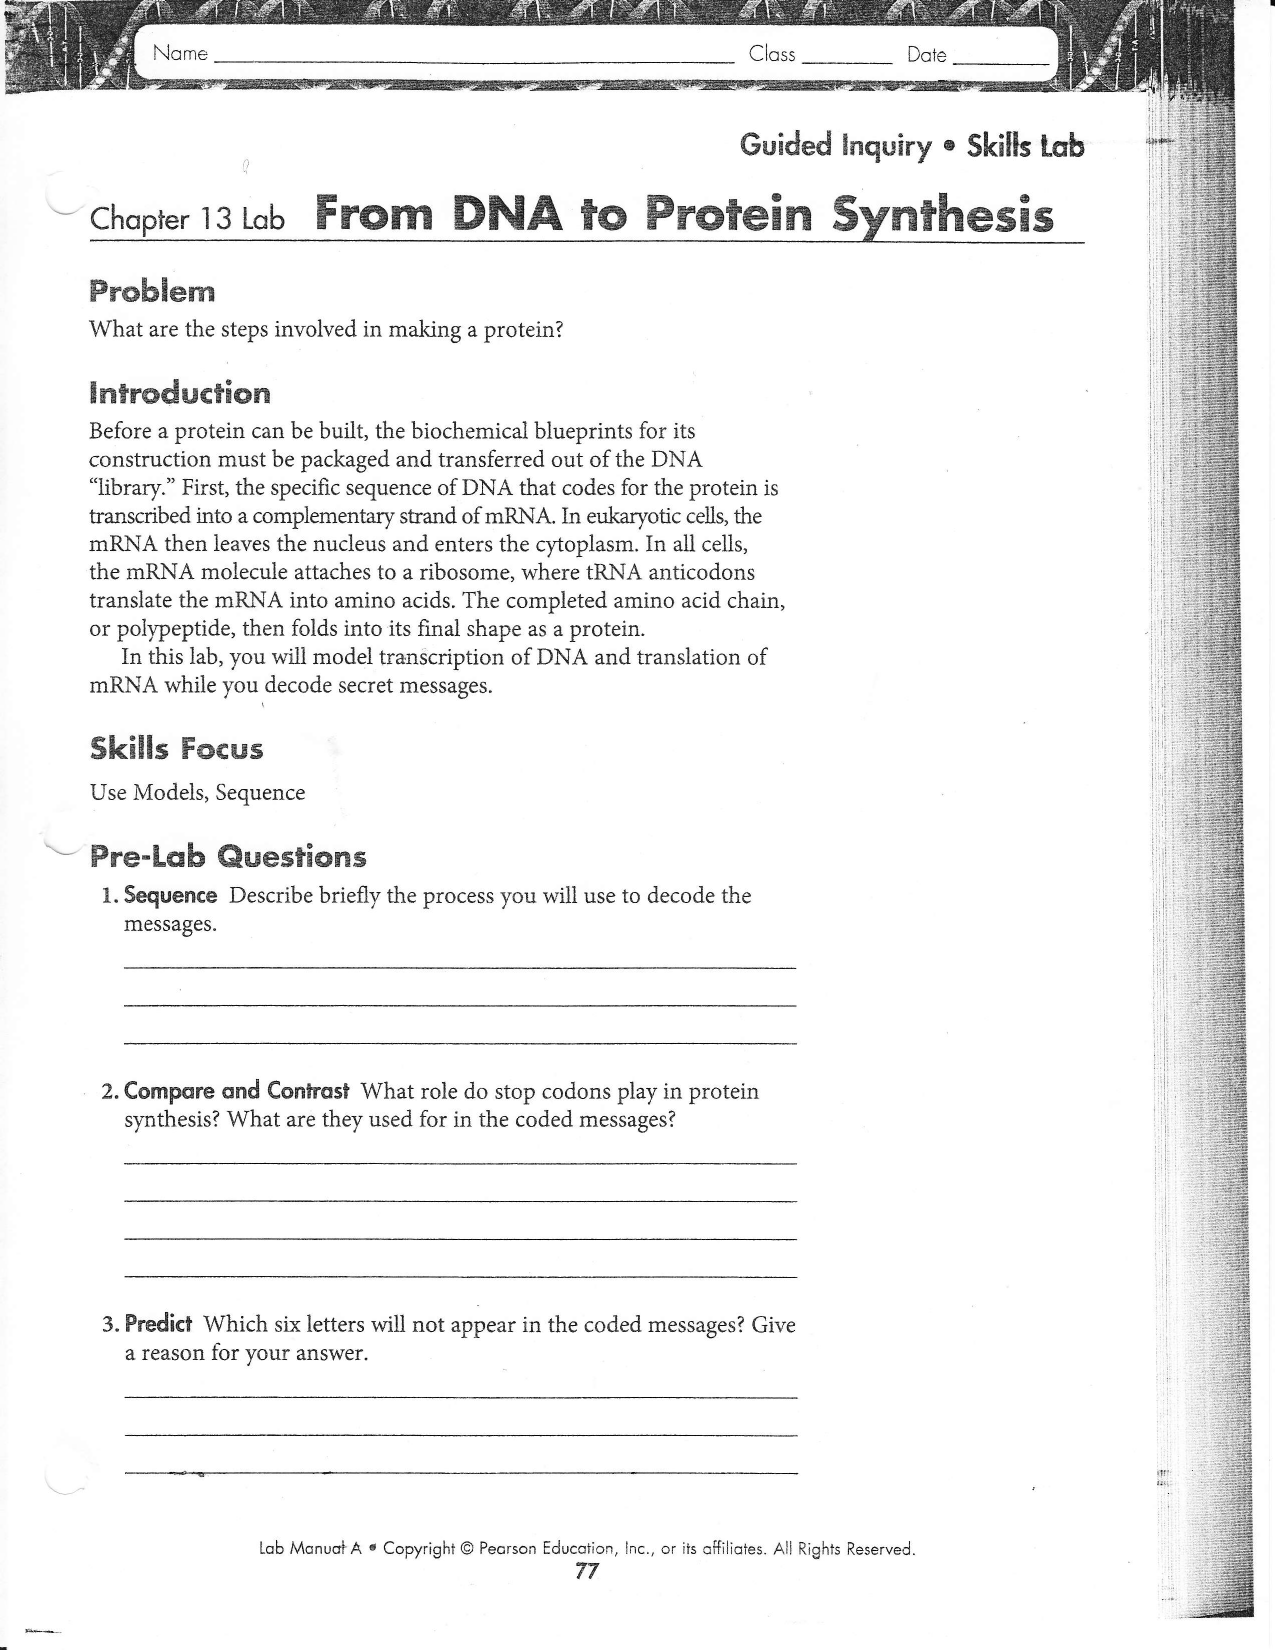 Protein Synthesis Worksheet Answers Part A - Nidecmege